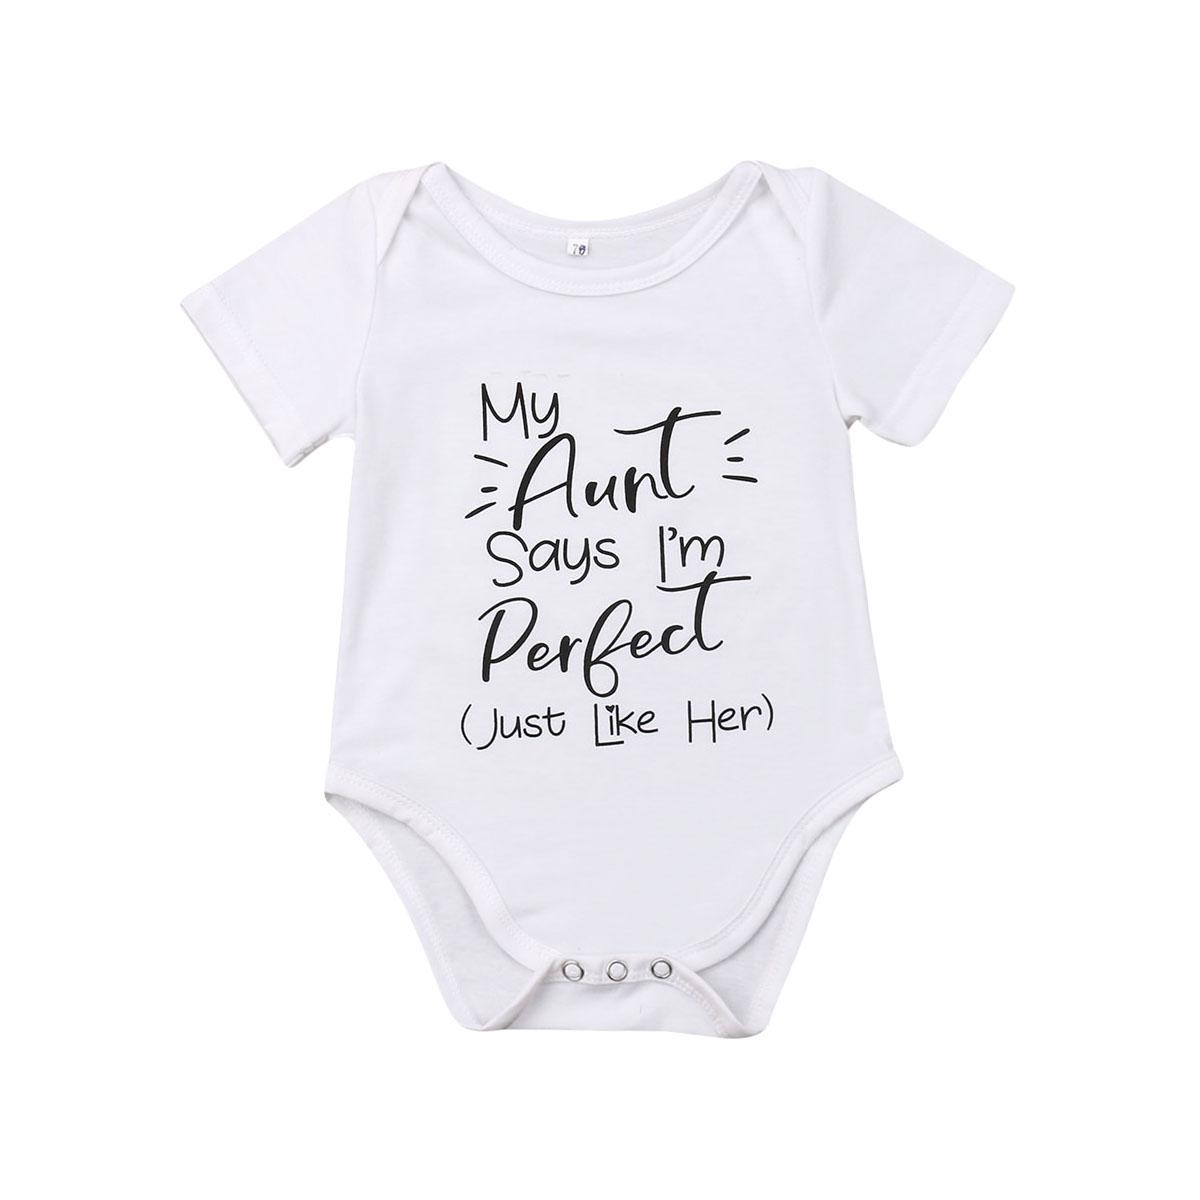 I Love My Aunty to The Moon and Back Baby Boy Romper Baby Girl Romper Baby Romper